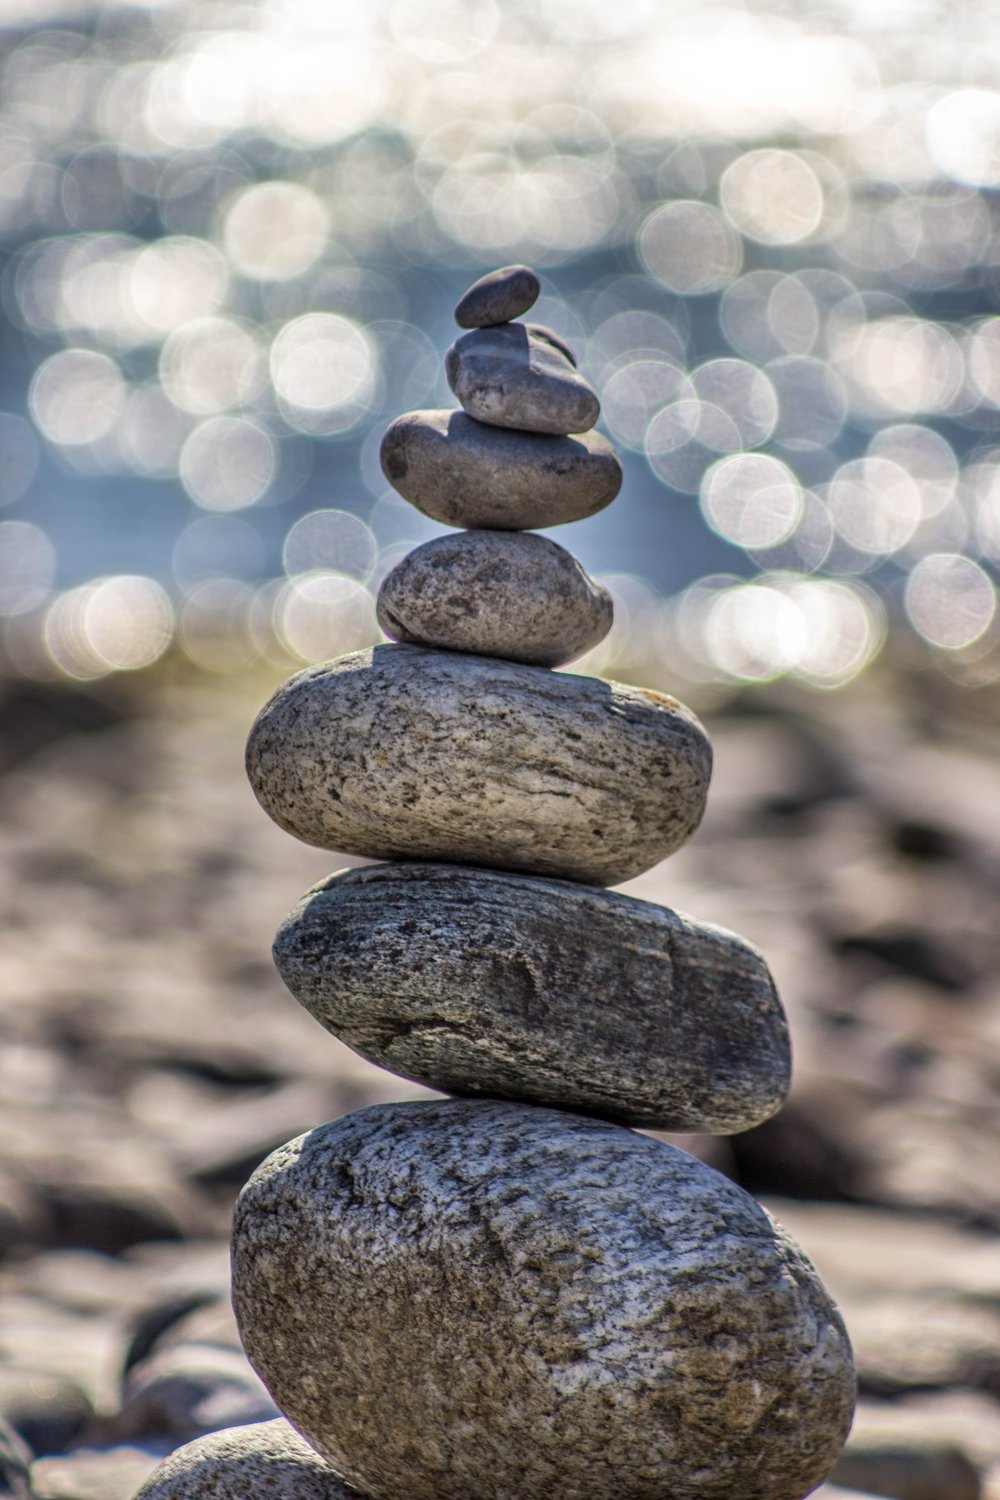 Find your balance.